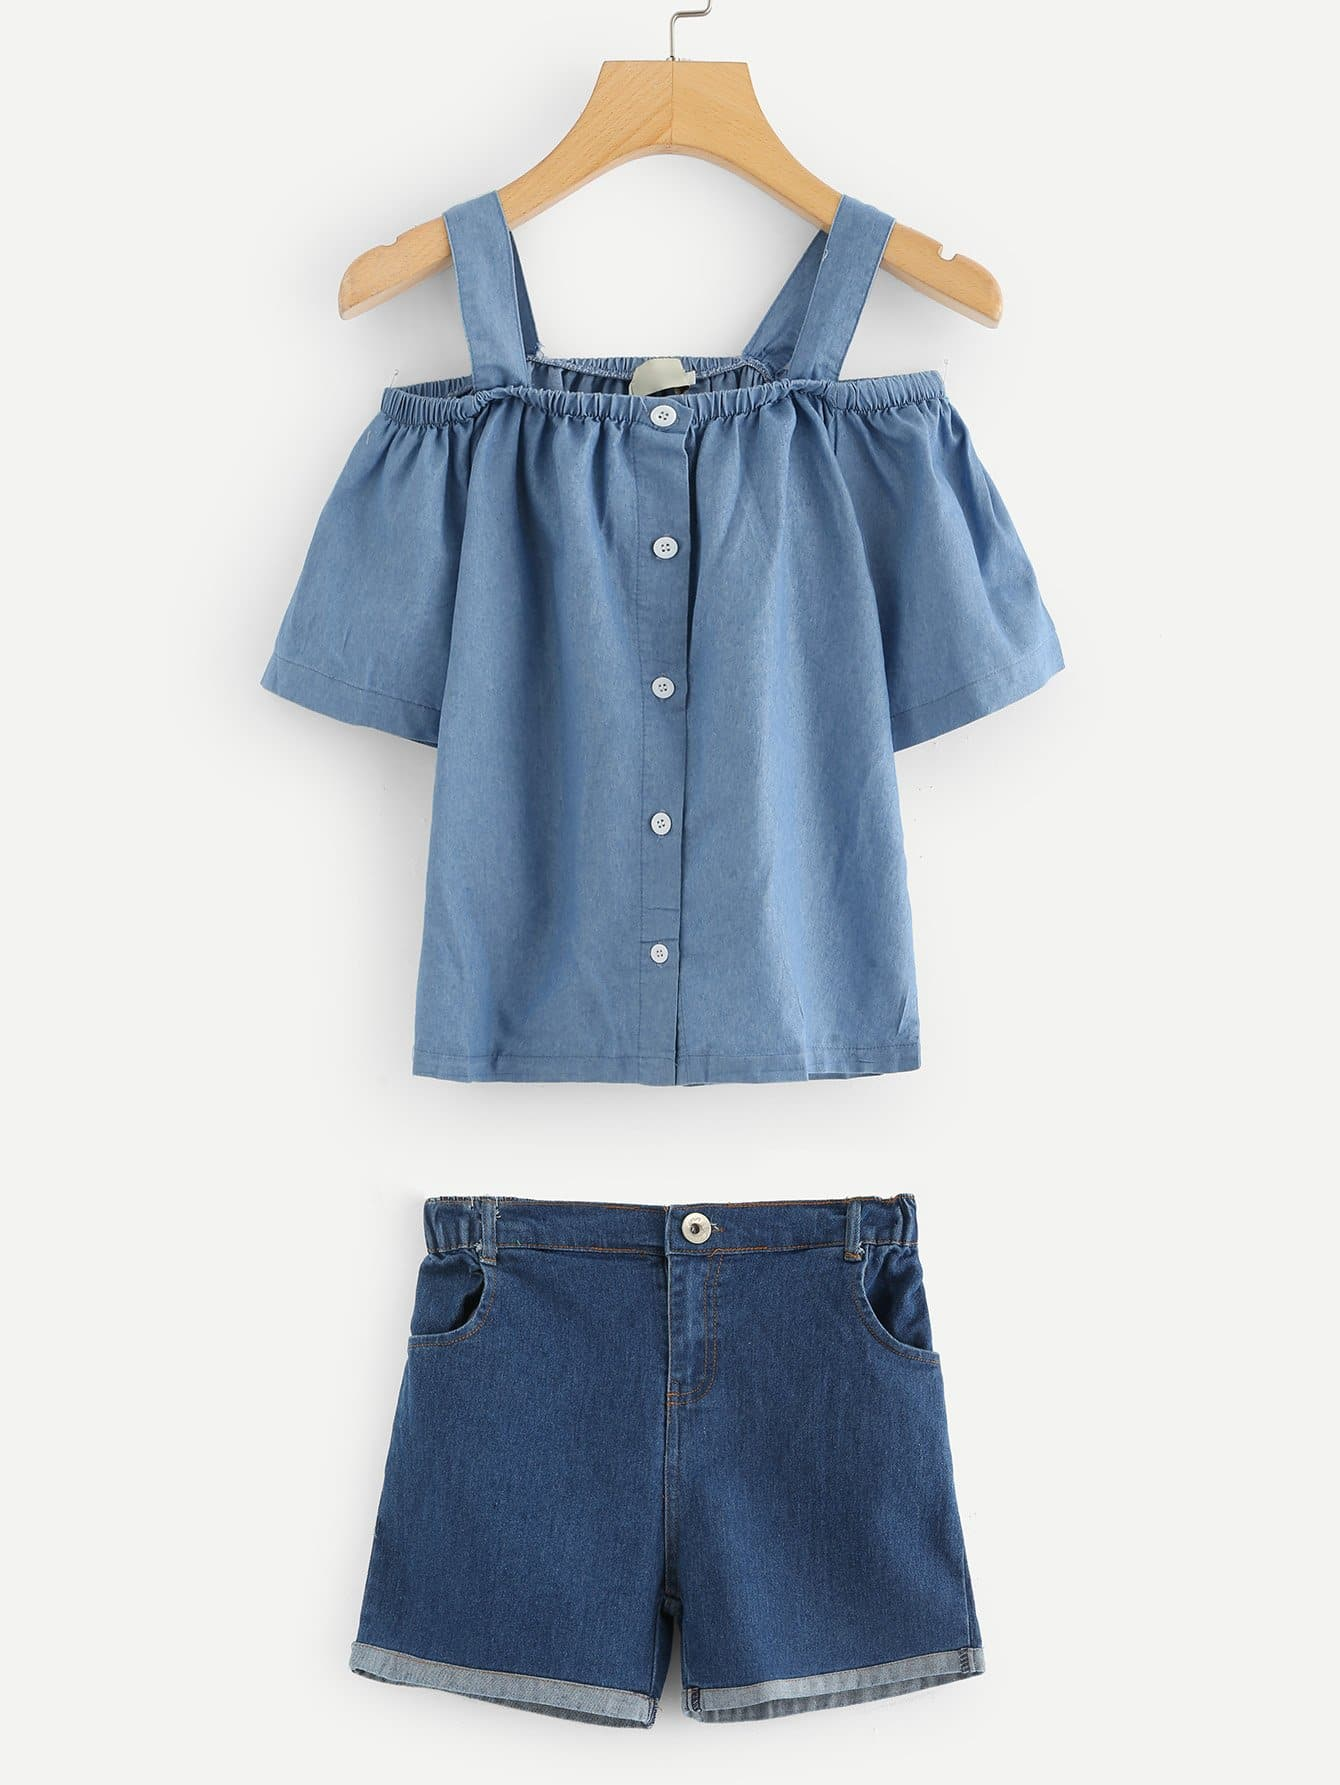 Button Decoration Cami Blouse With Rolled Hem Denim Shorts button decoration cami with drawstring shorts